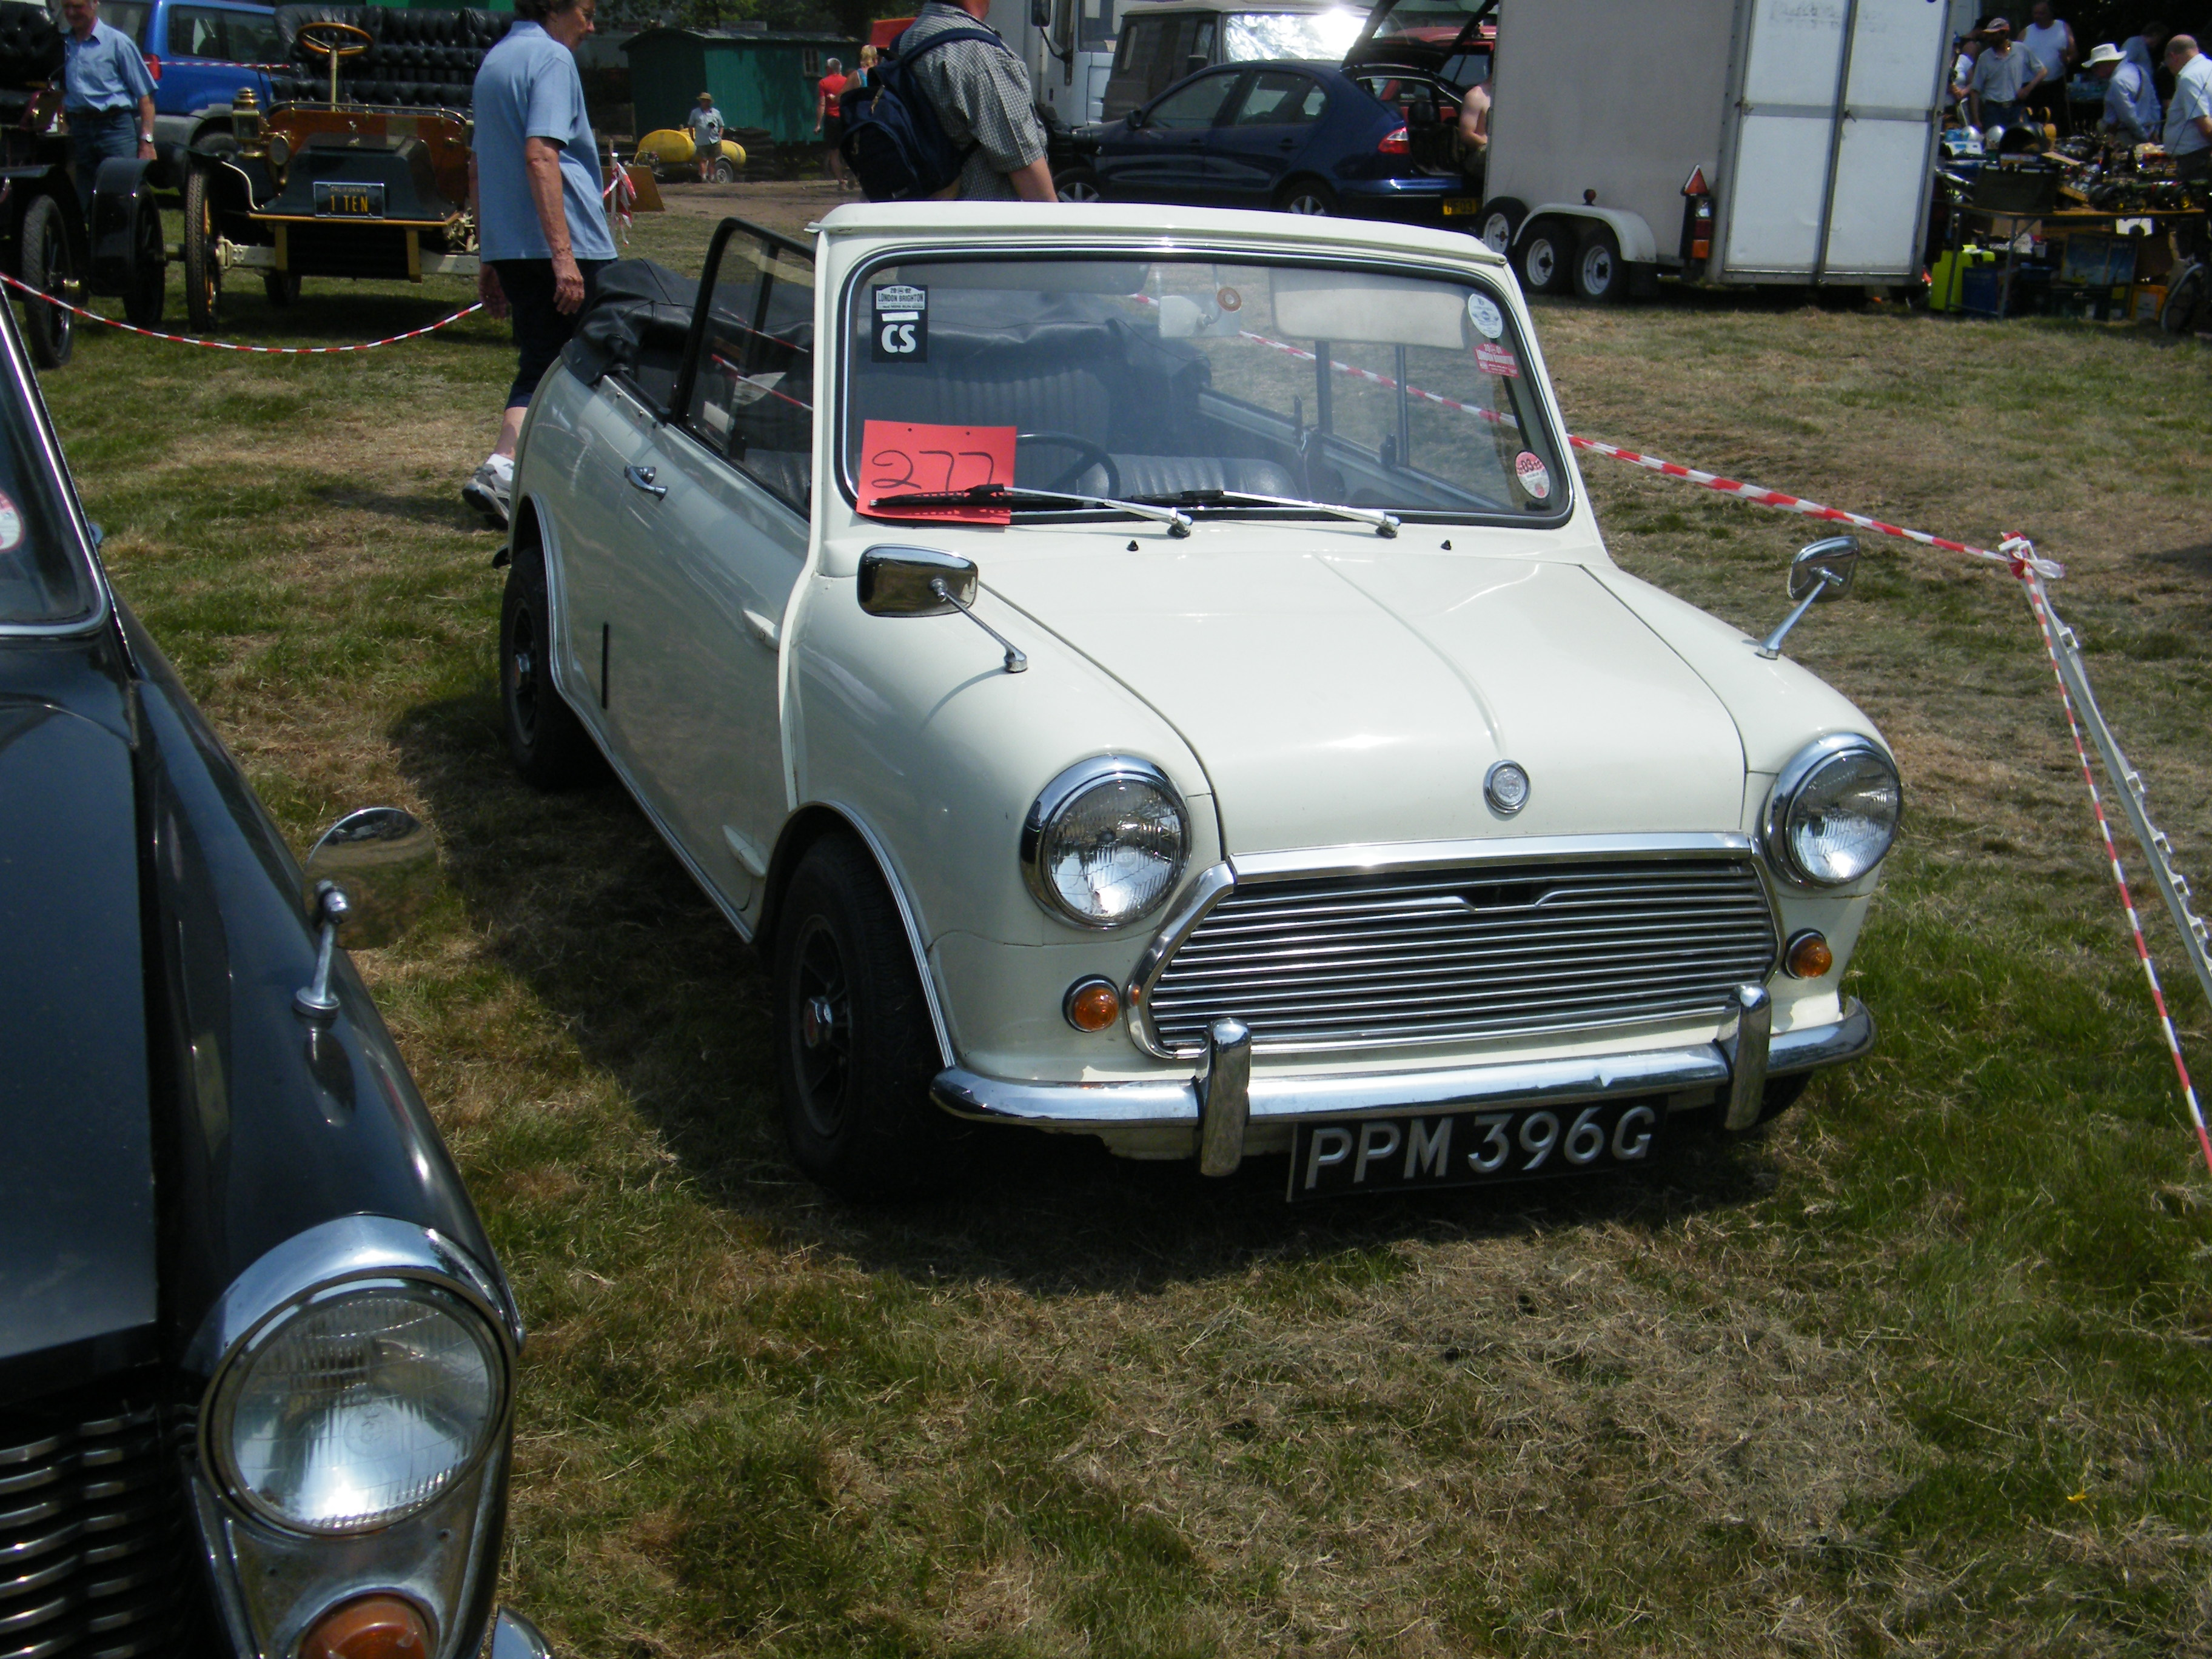 1968 Morris Mini Convertible (1) | Flickr - Photo Sharing!